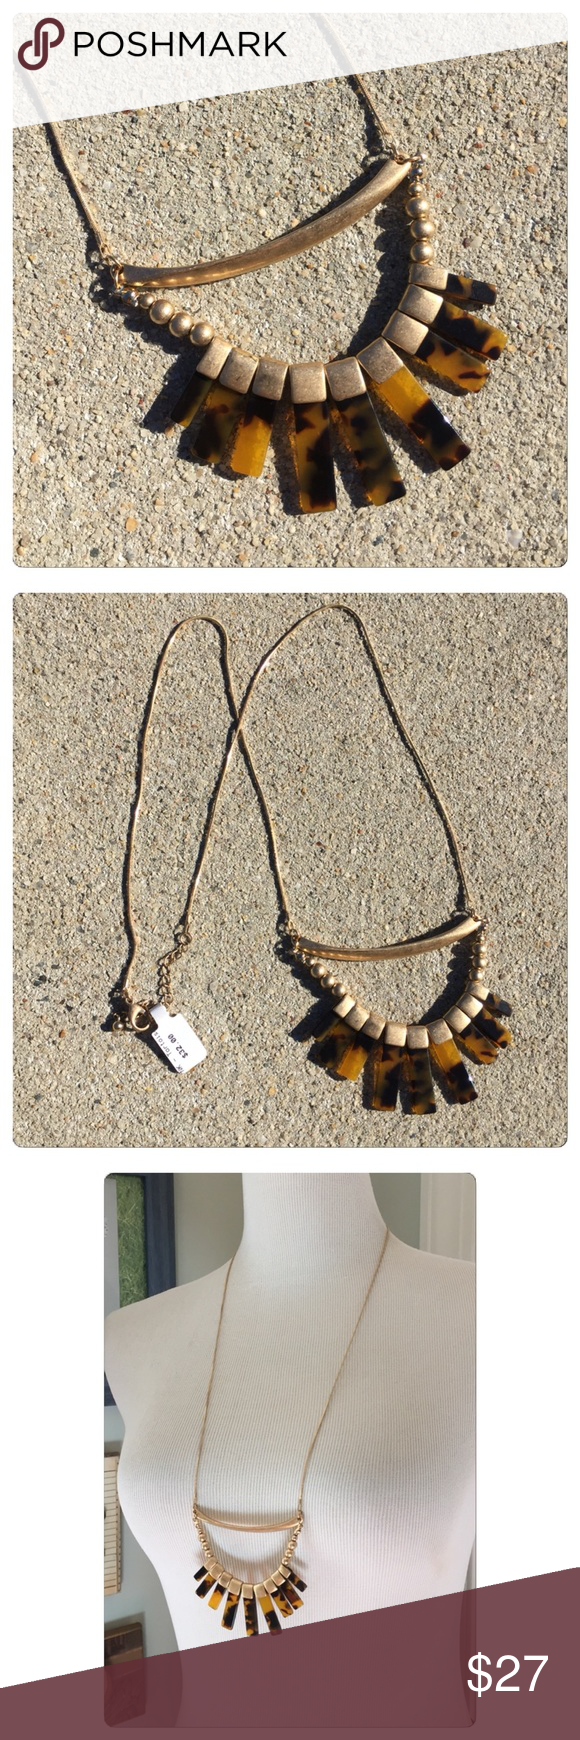 """Boho Tortoiseshell Necklace NWT NWT. From a boutique in Fells Point. Brushed gold-tone metal with slight distressing for a vintage look. Tortoiseshell pendant. Lobster clasp. Adjustable 30-33"""" long including pendant which is about 3"""" by 3"""". No trades or pp 10% bundle discount Jewelry Necklaces"""